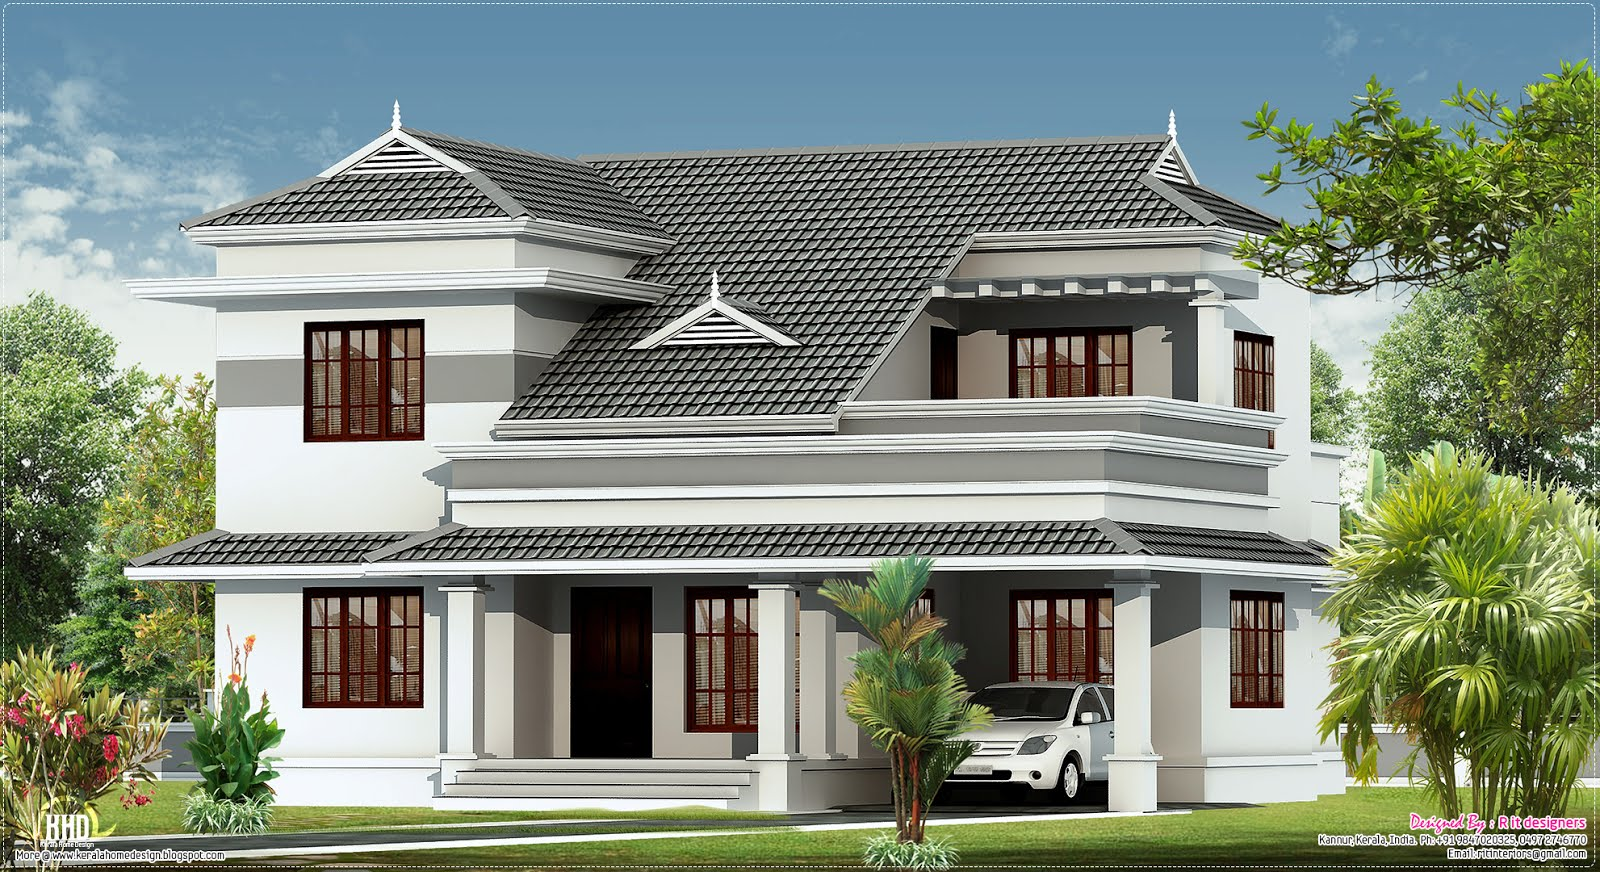 New villa design in 2250 kerala home design and for New home house plans